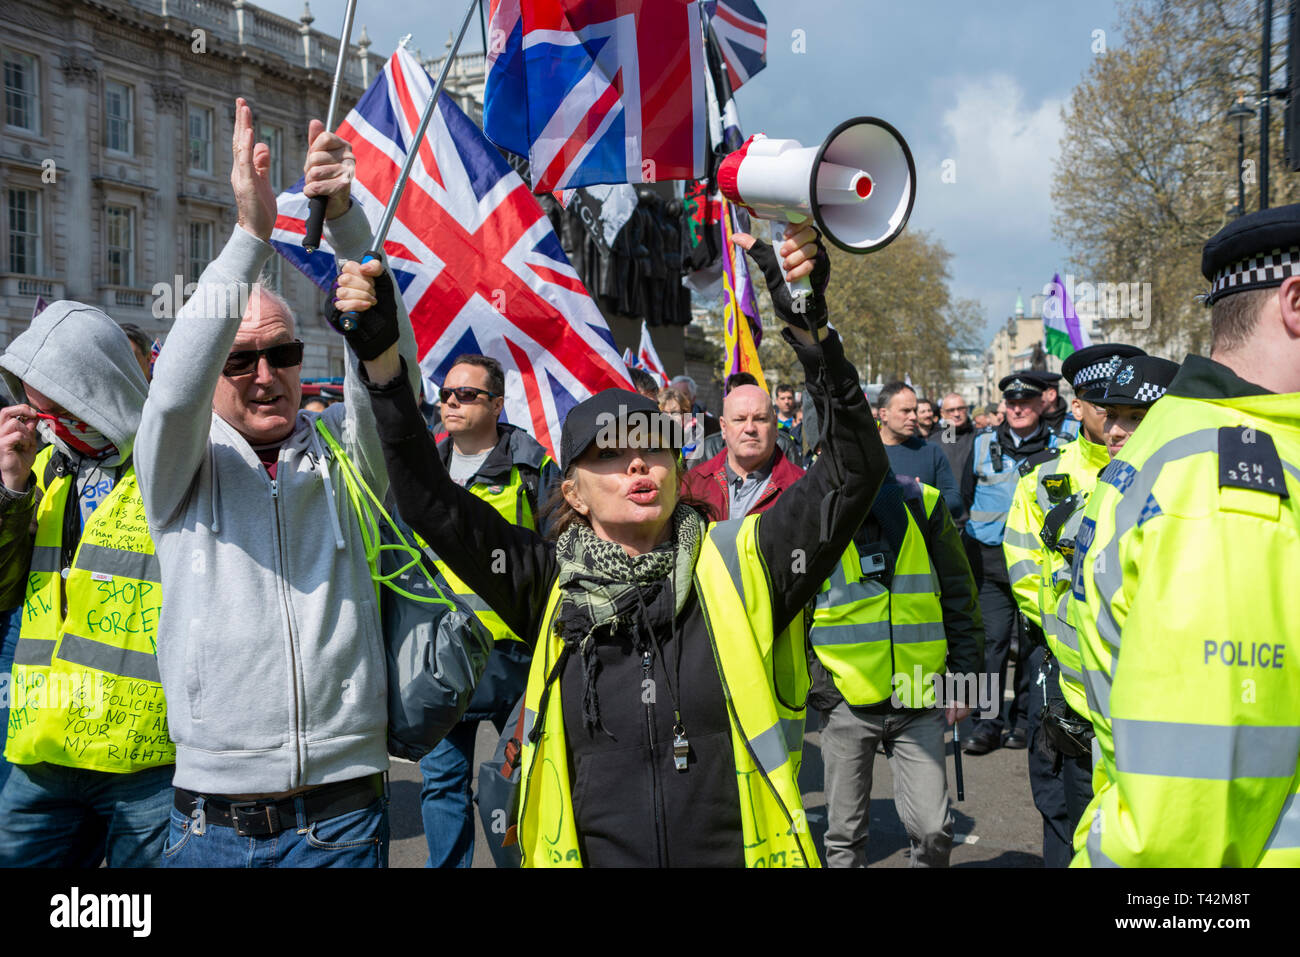 large-protest-in-favour-of-a-no-deal-brexit-yellow-vest-protesters-have-gathered-outside-downing-street-to-demonstrate-against-the-uk-governments-lack-of-progress-in-leaving-the-european-union-T42M8T.jpg